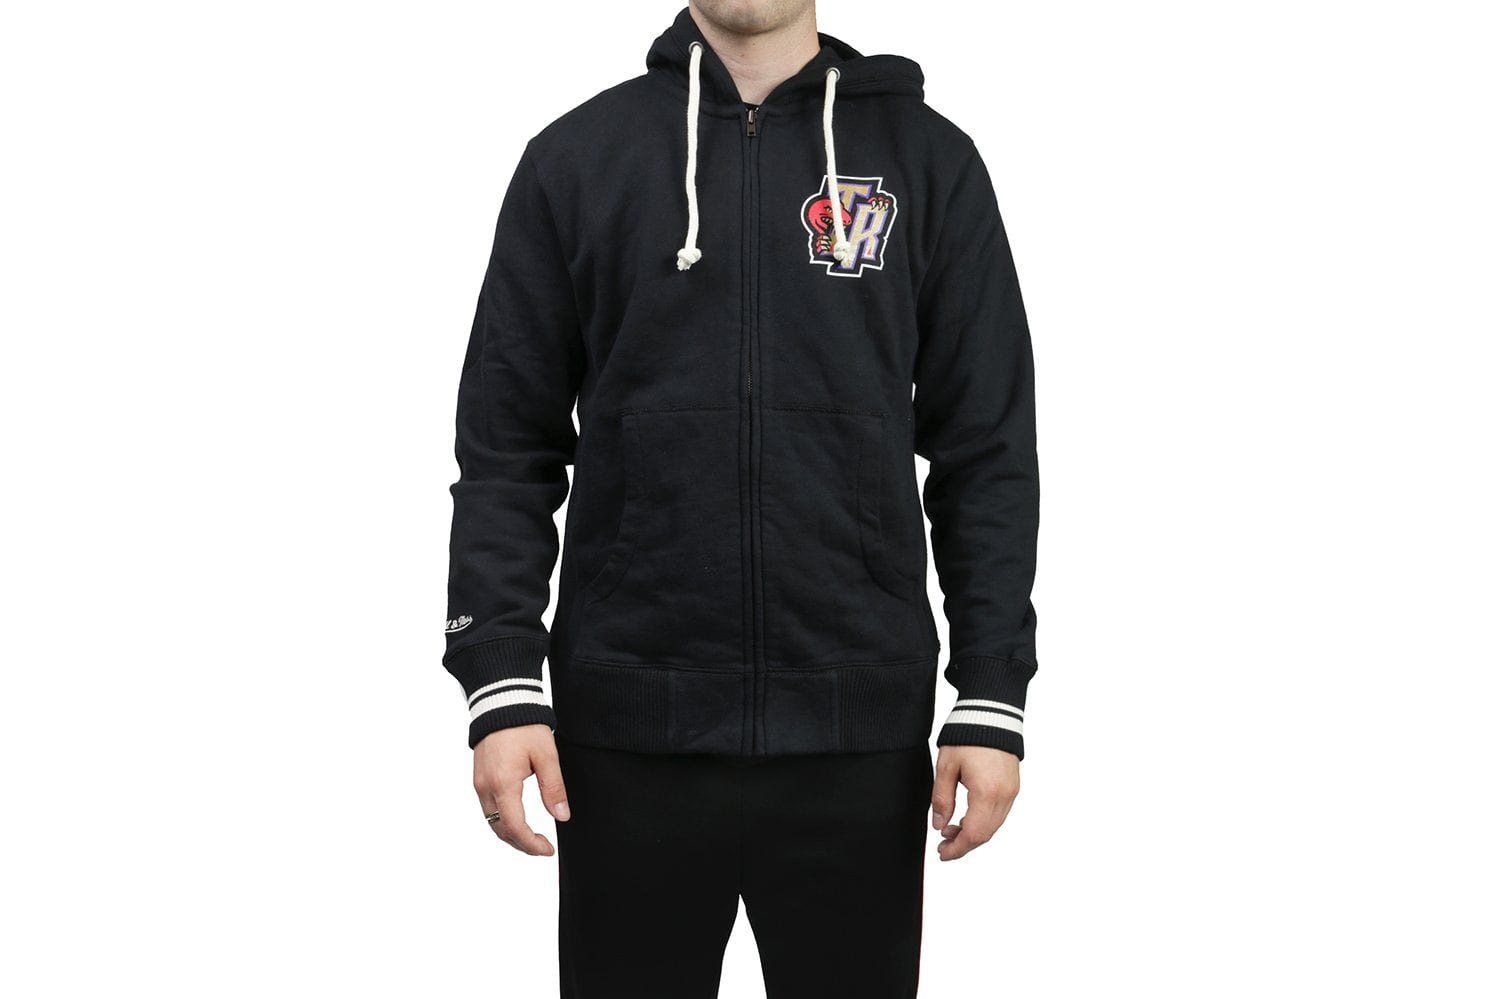 RAPTORS RESPECT THE NORTH TR ZIP HOODIE MENS SOFTGOODS MITCHELL & NESS